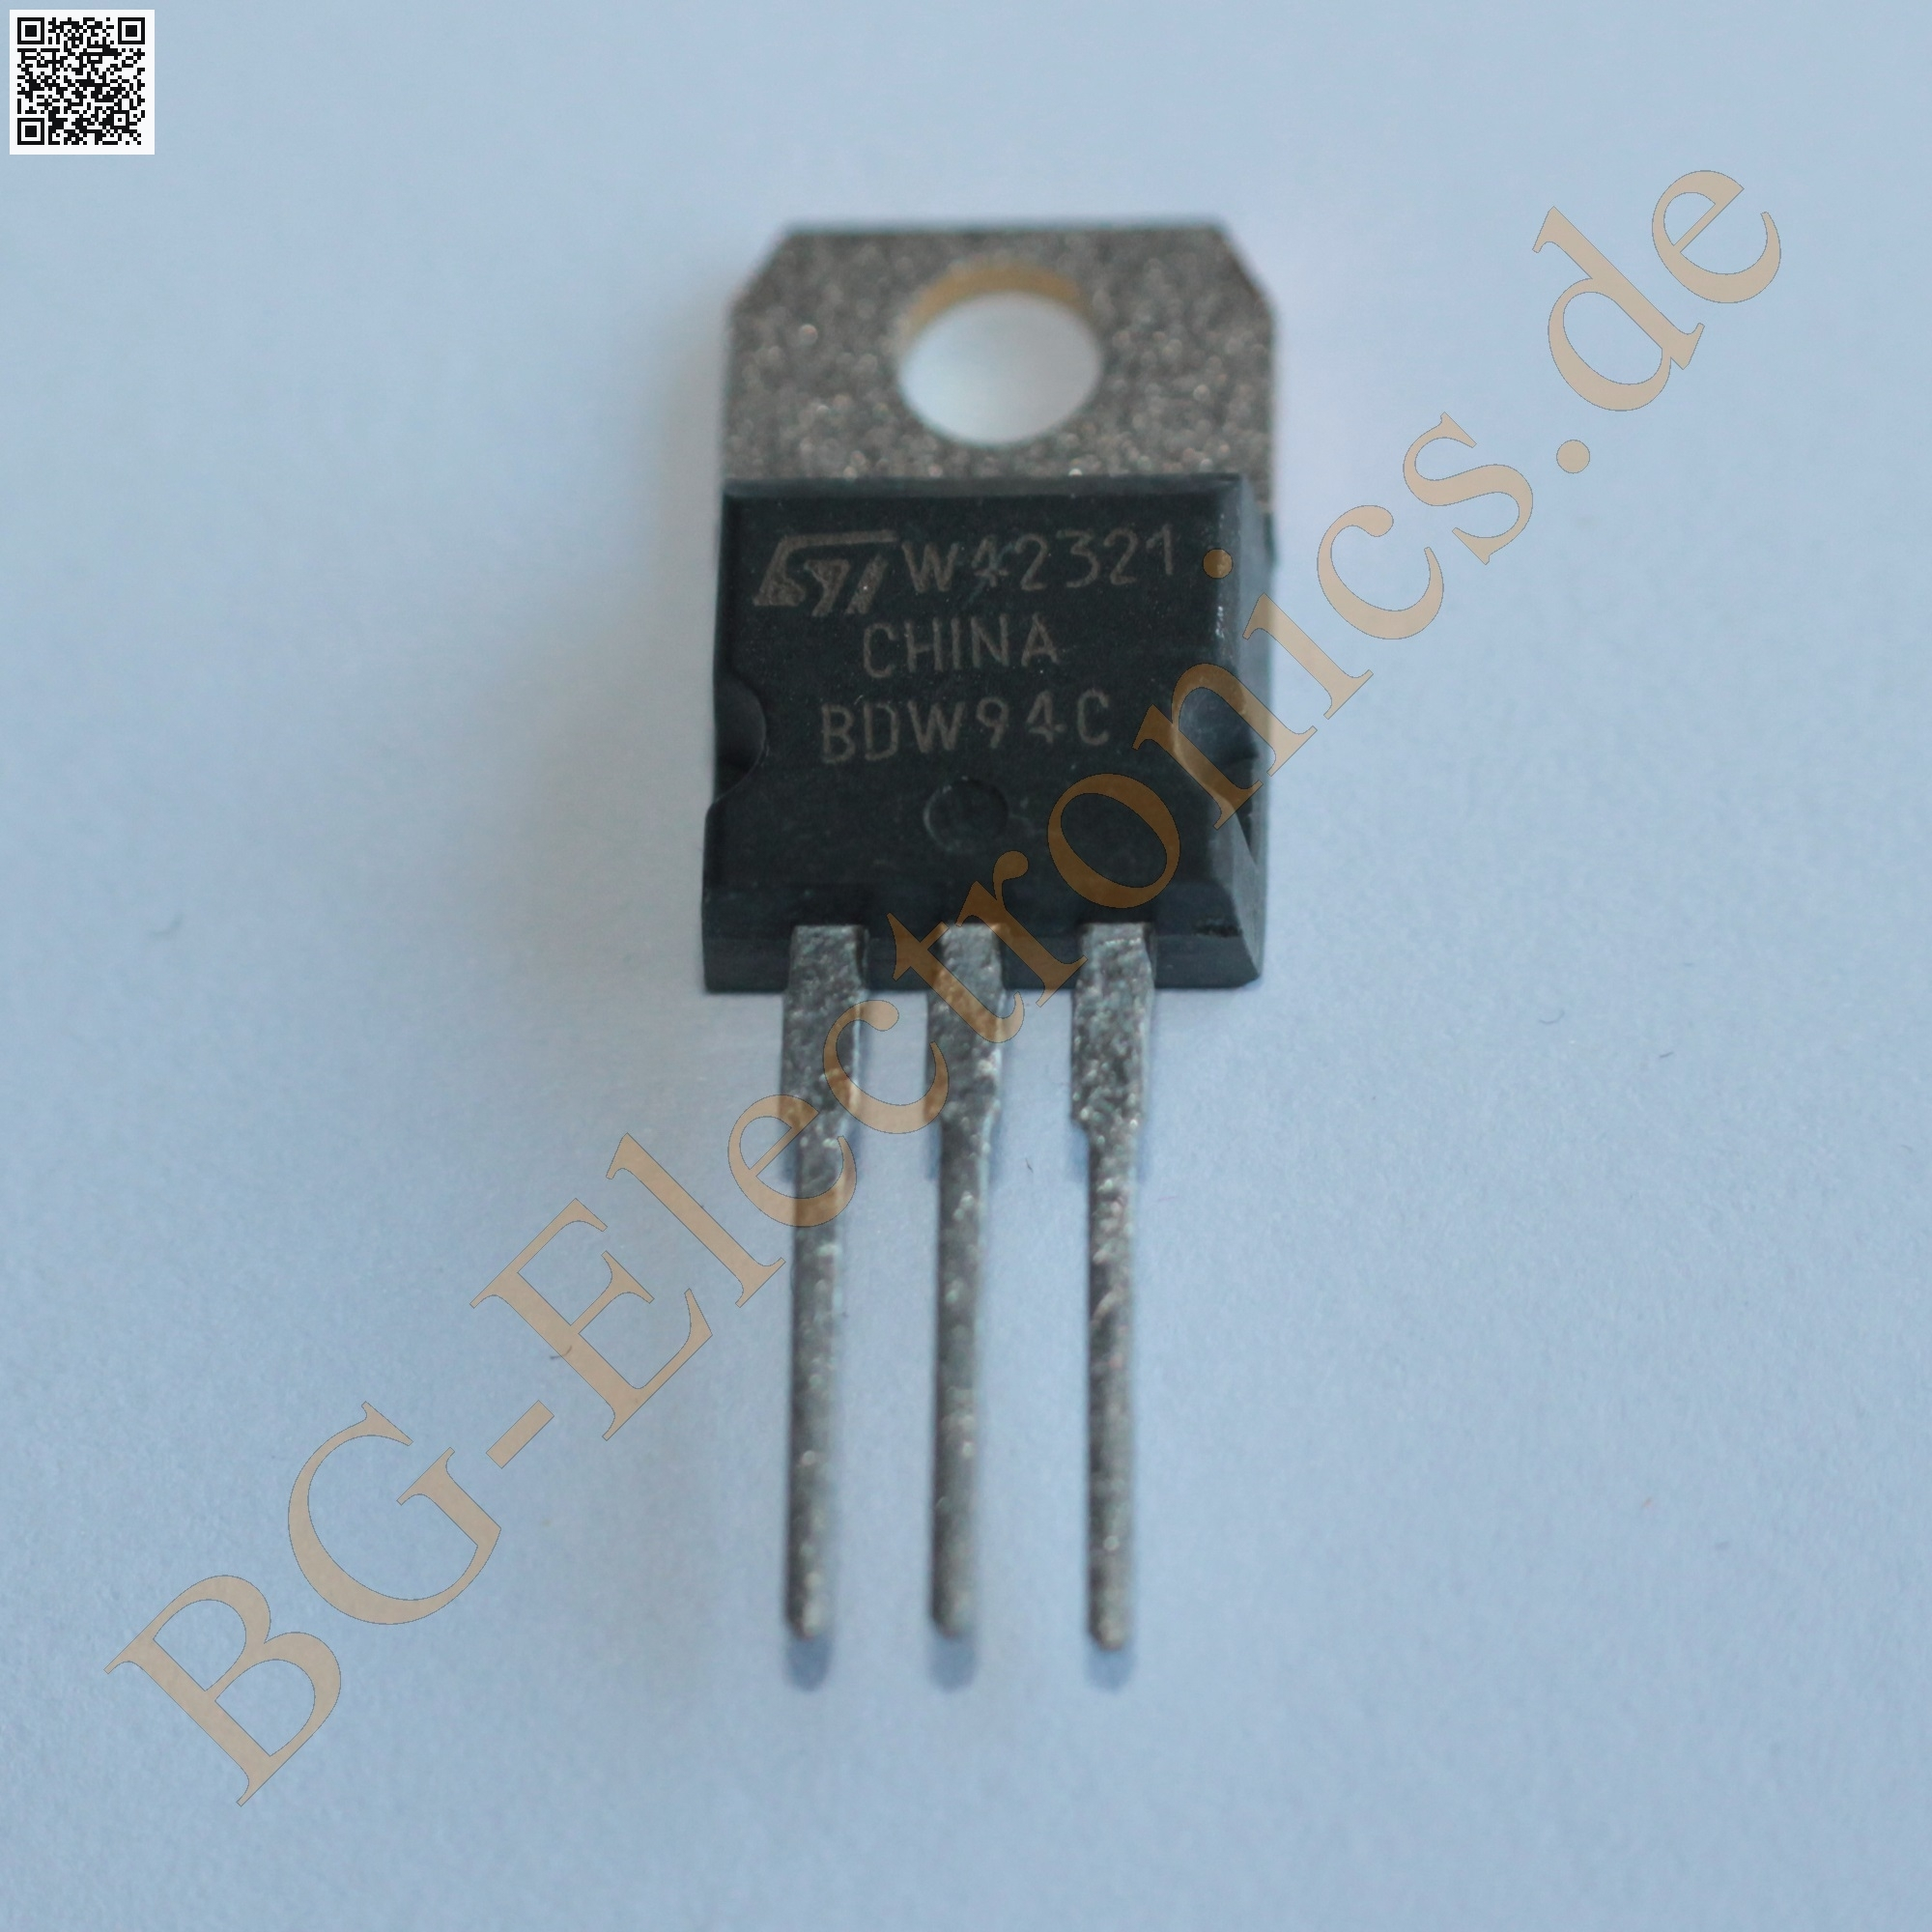 Bdw94c Bg Electronics Bdw94 The N Type Mosfet Irf3205s Can Be Replaced With Different Types Of